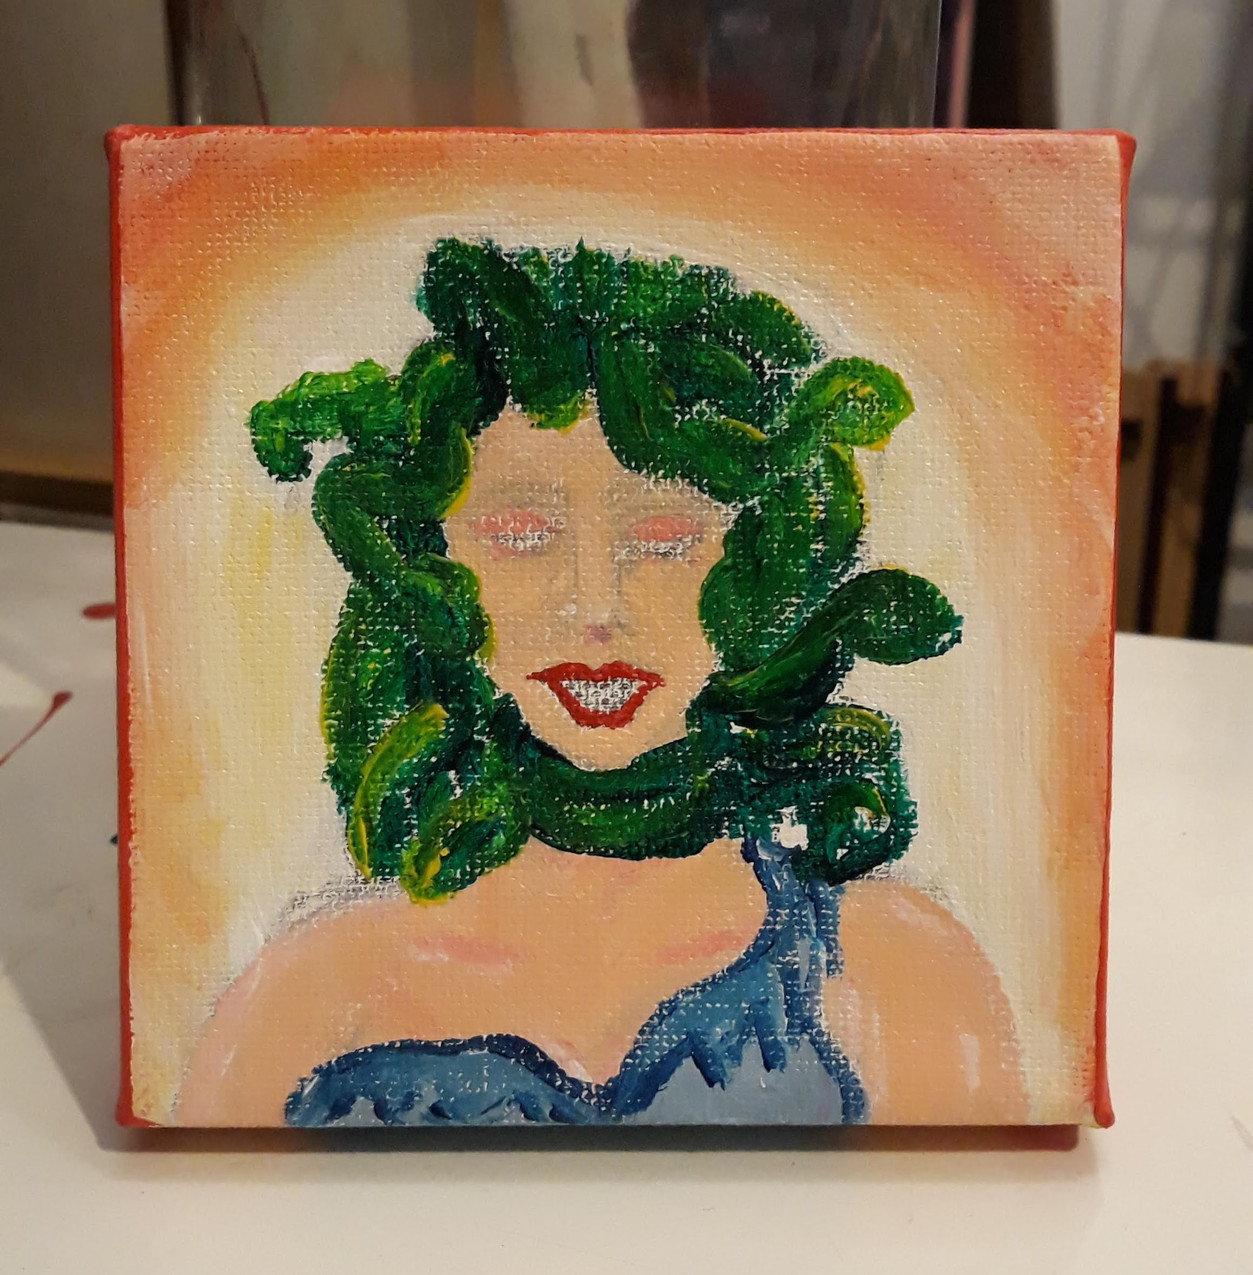 20 minute acrylic of Medusa. No reference used.